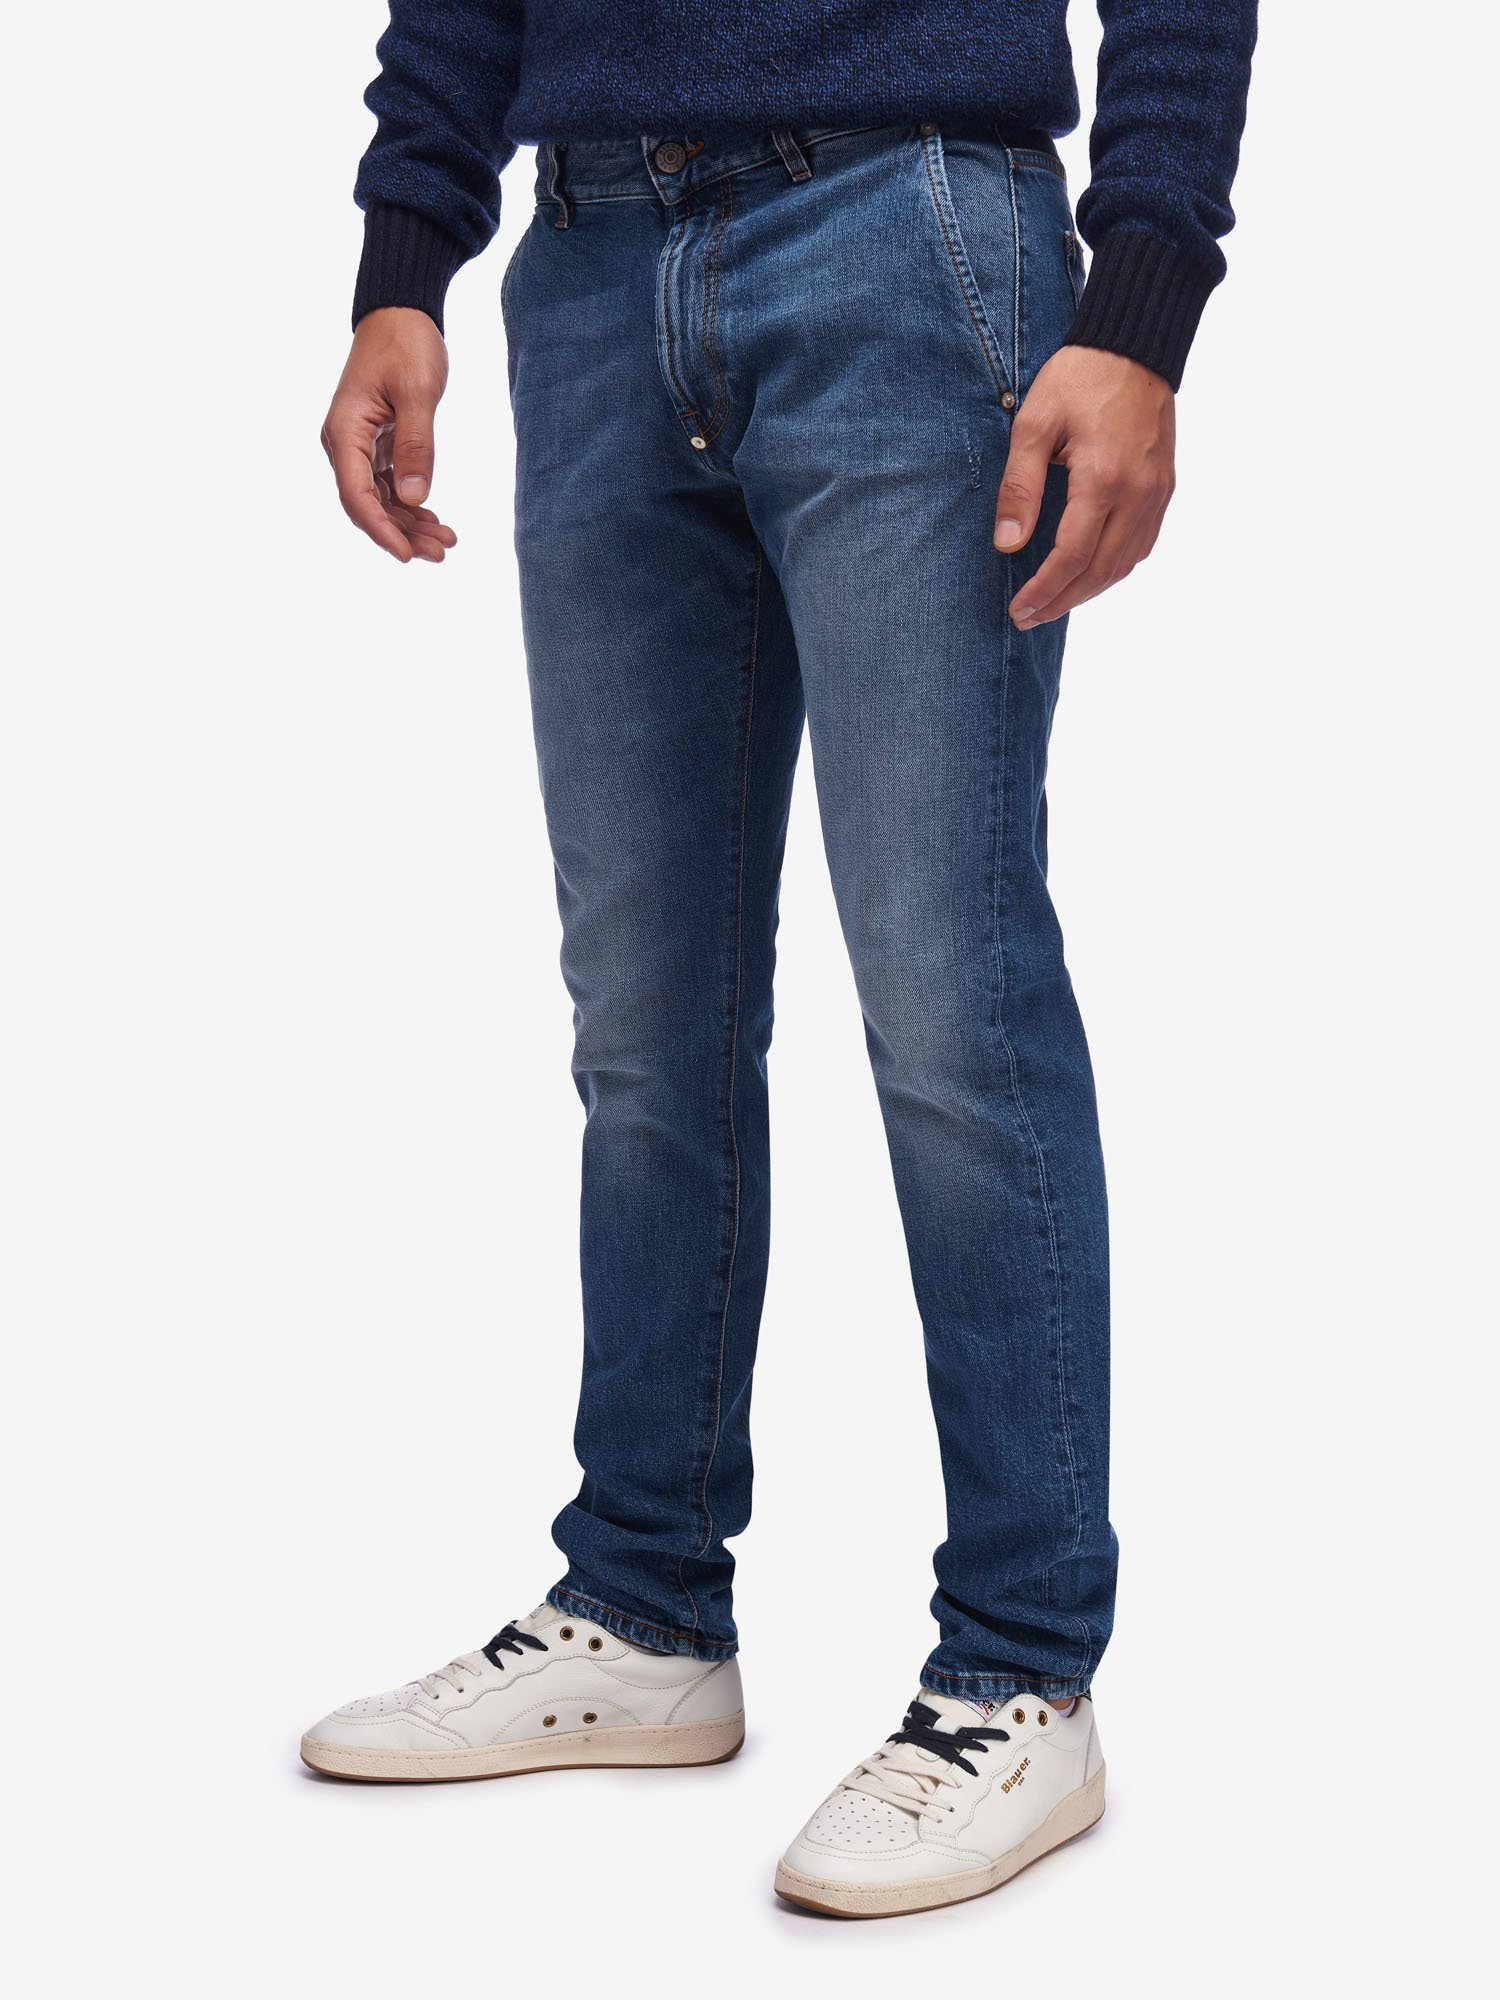 Blauer - DENIM-STRETCHHOSE MIT REISSVERSCHLUSS - Stone Wash Light - Blauer